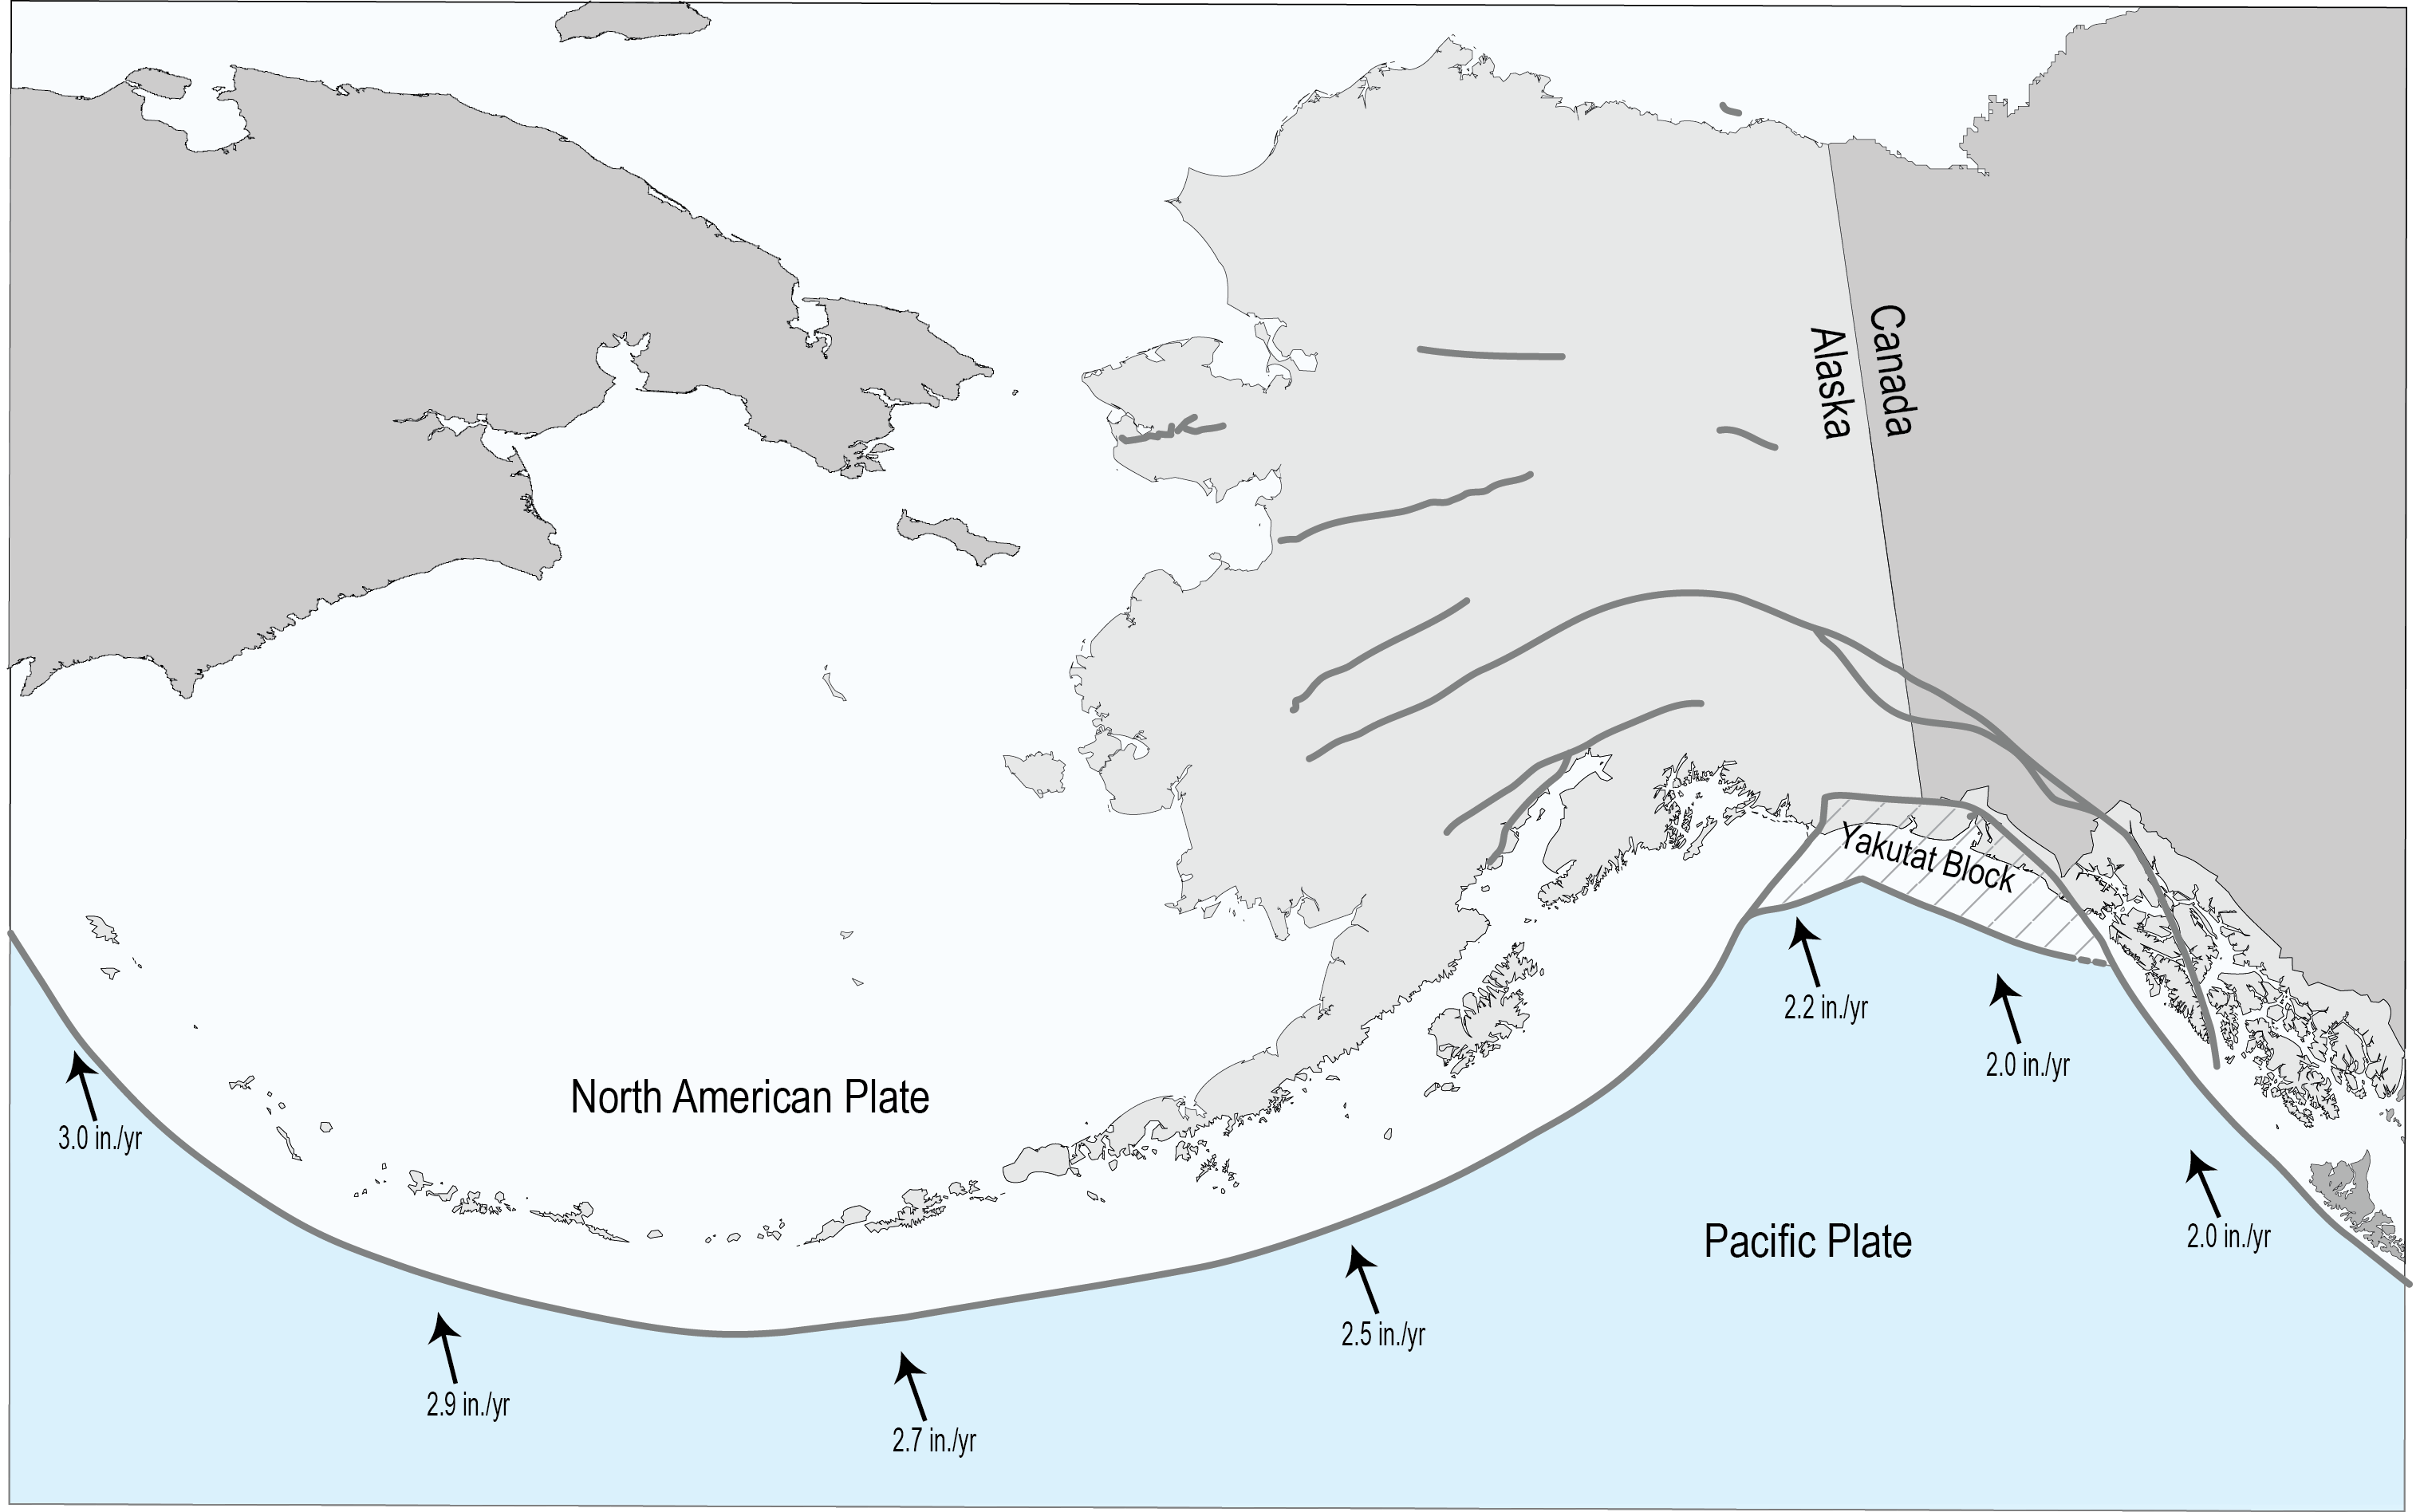 northern alaska tectonics Dwight bradley research geologist acadian tectonics, northern and other faunal links between lower paleozoic strata in northern and central alaska and.